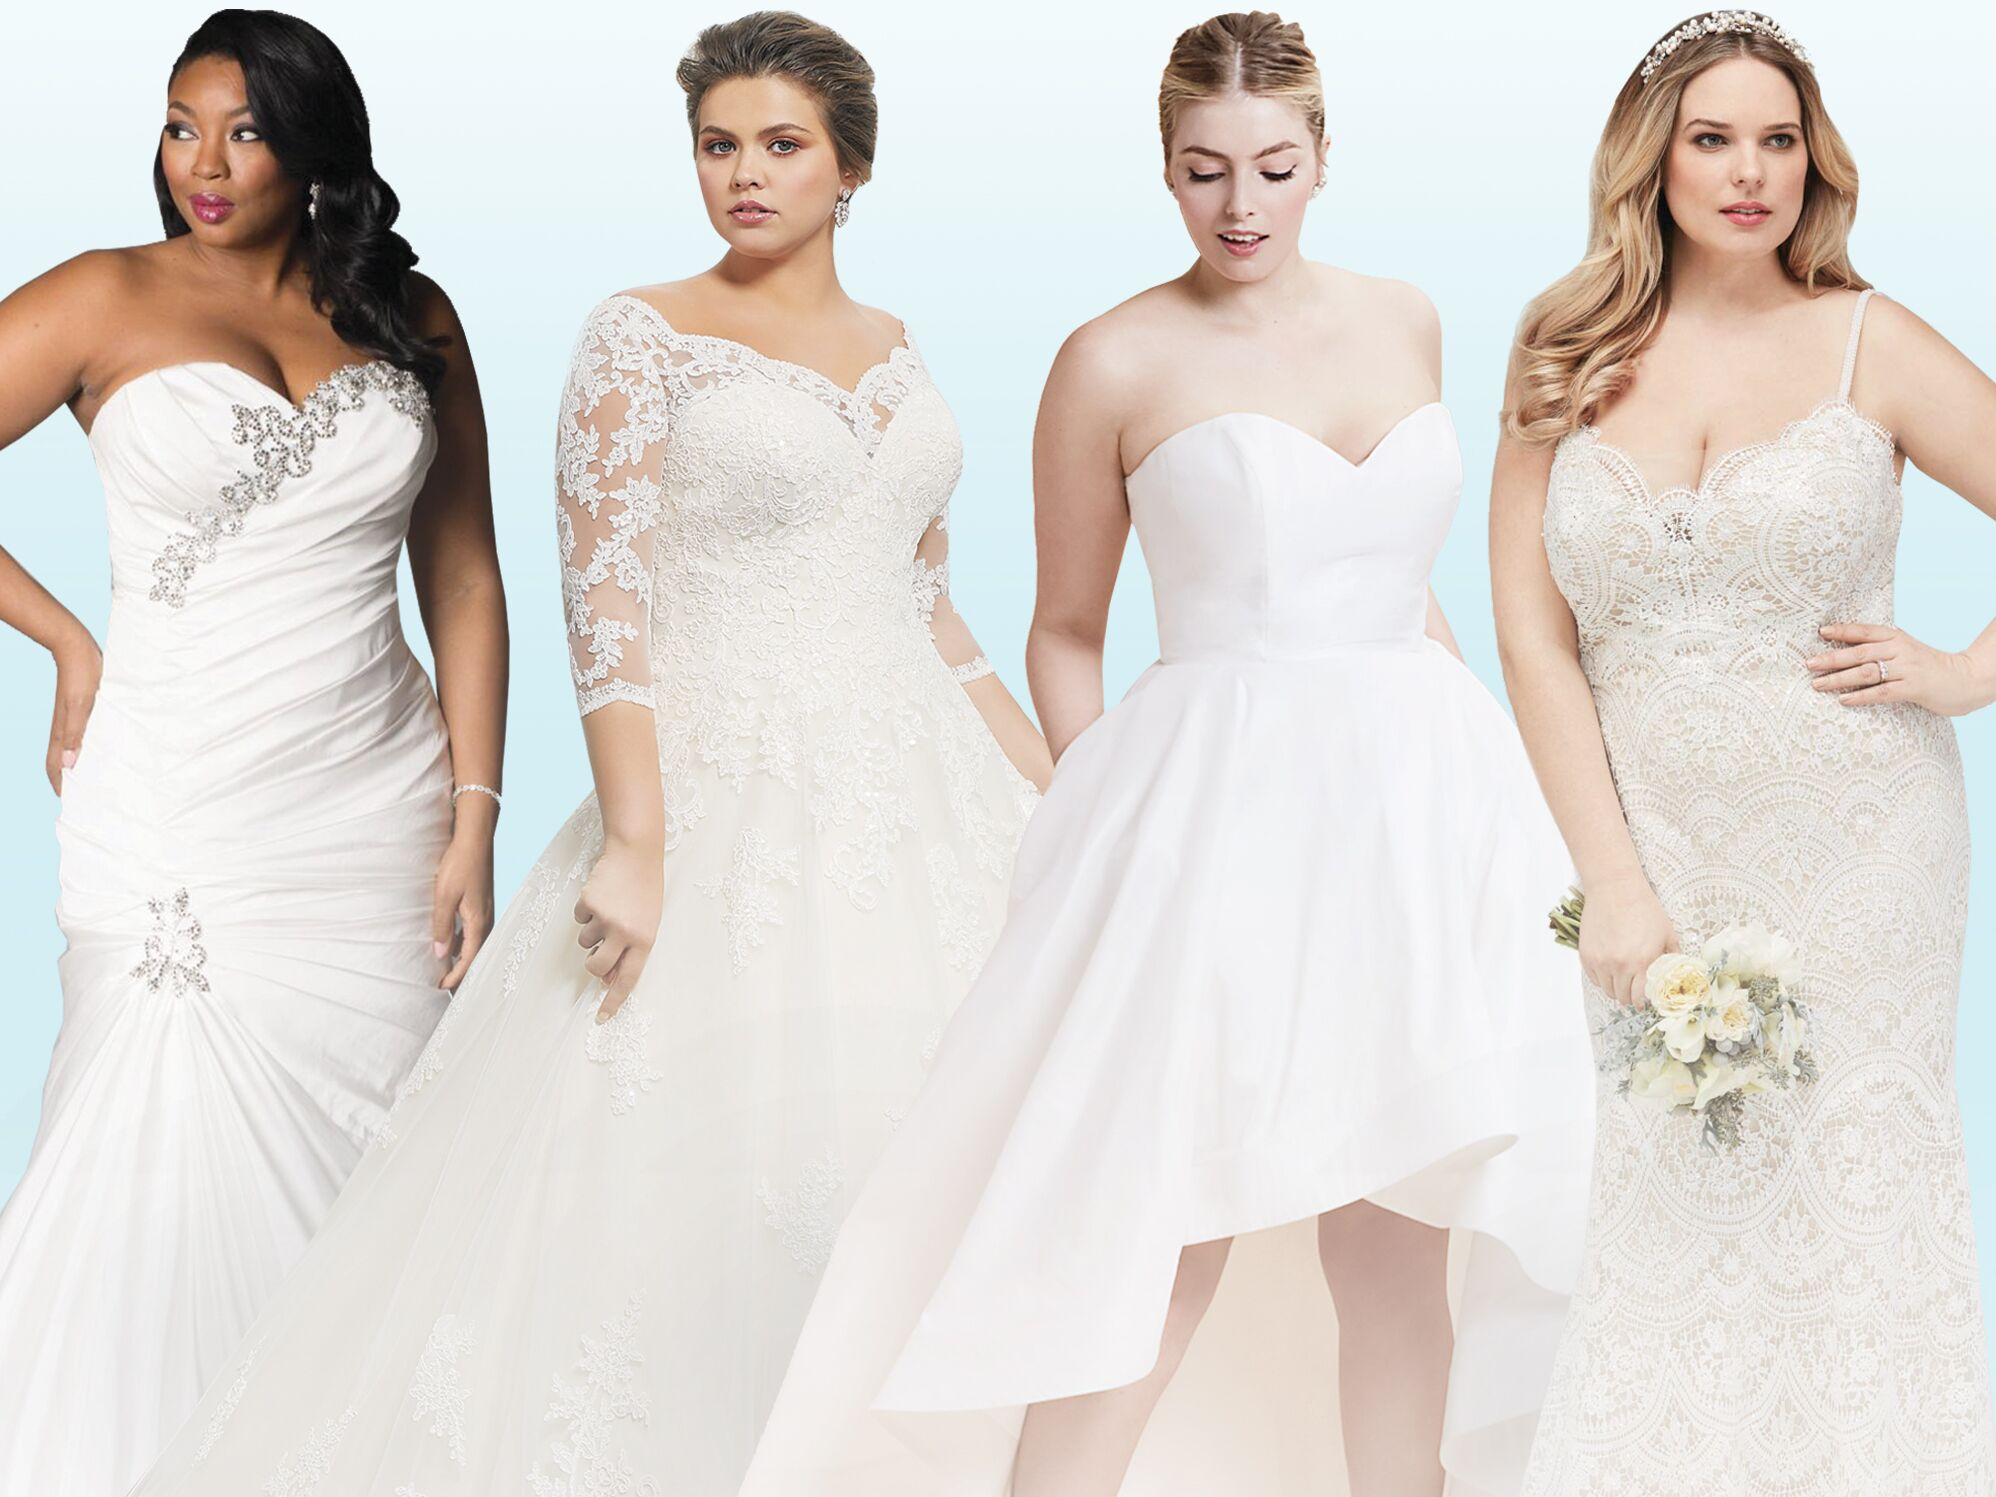 Tips for bridal party dresses for plus size women and how to choose colors of dresses?